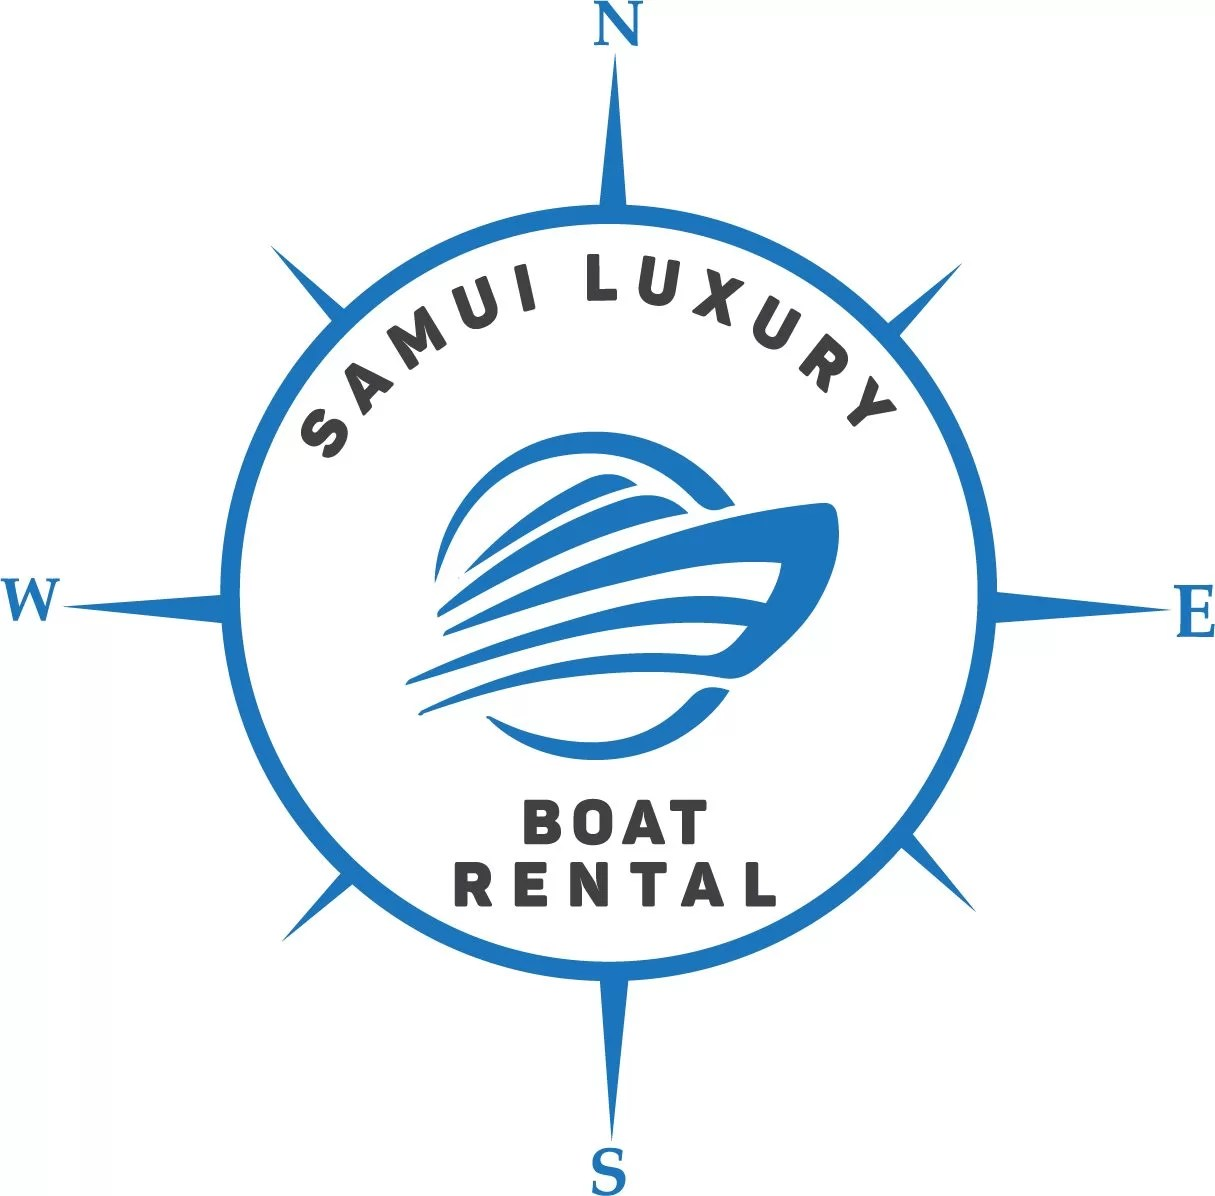 Samui Luxury Boat Rental